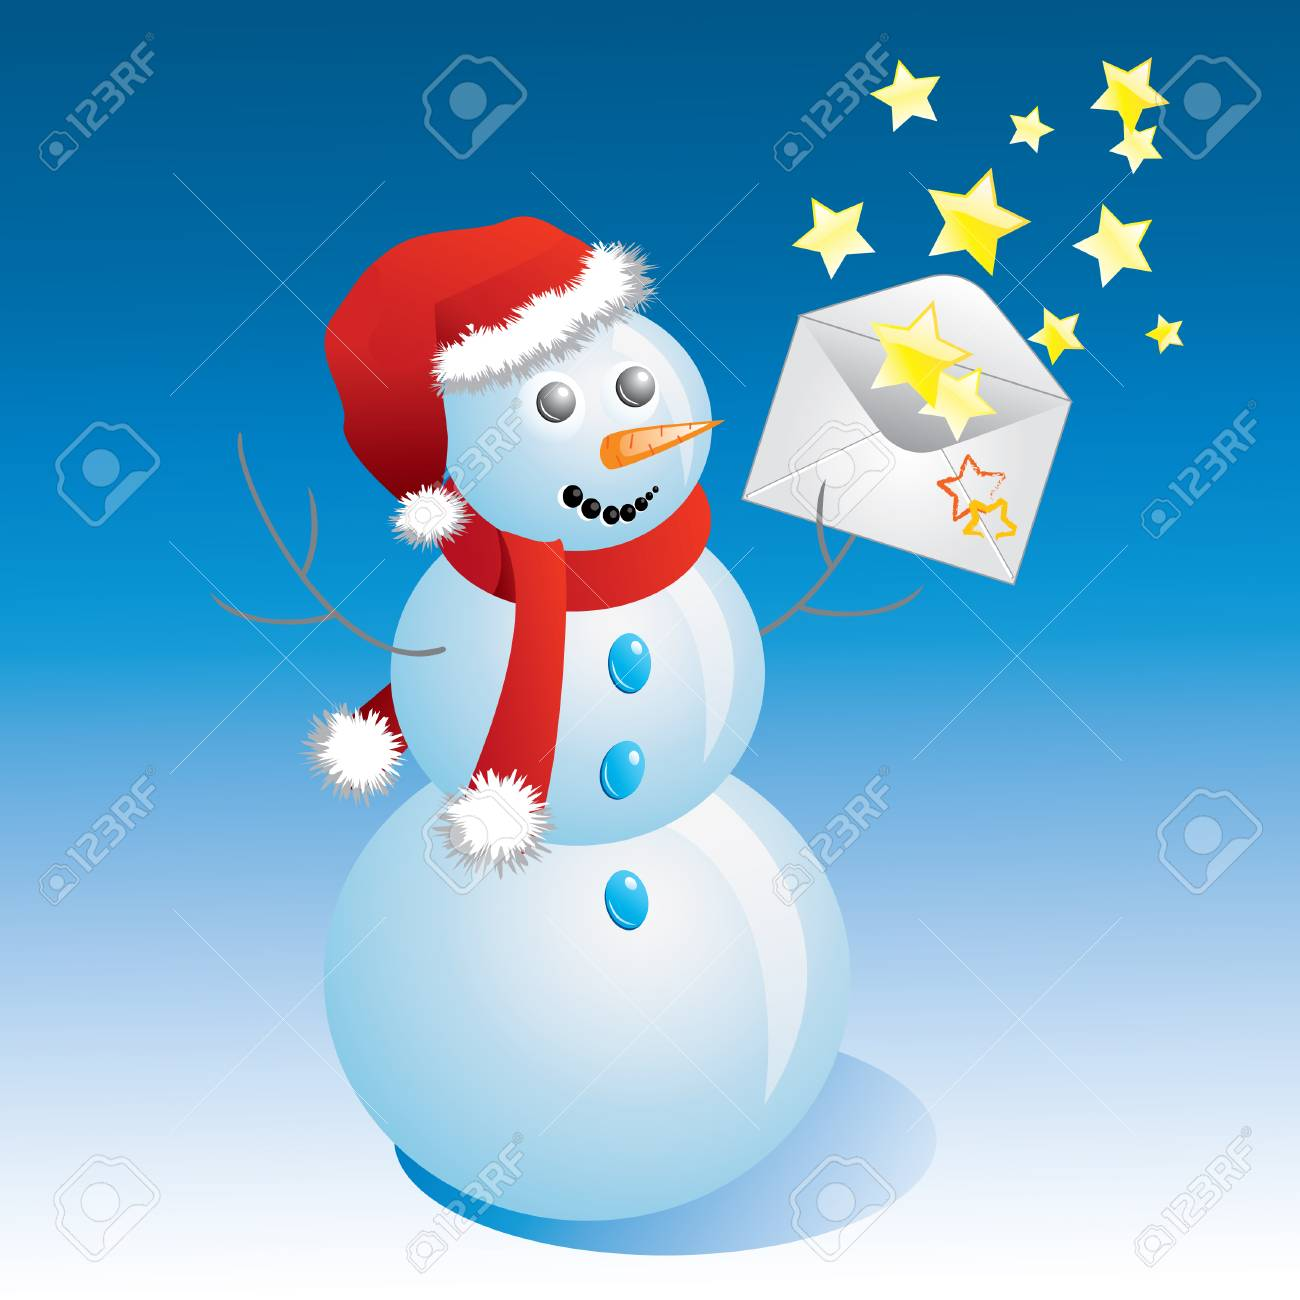 snowman with a message and the stars. Stock Vector - 8476524